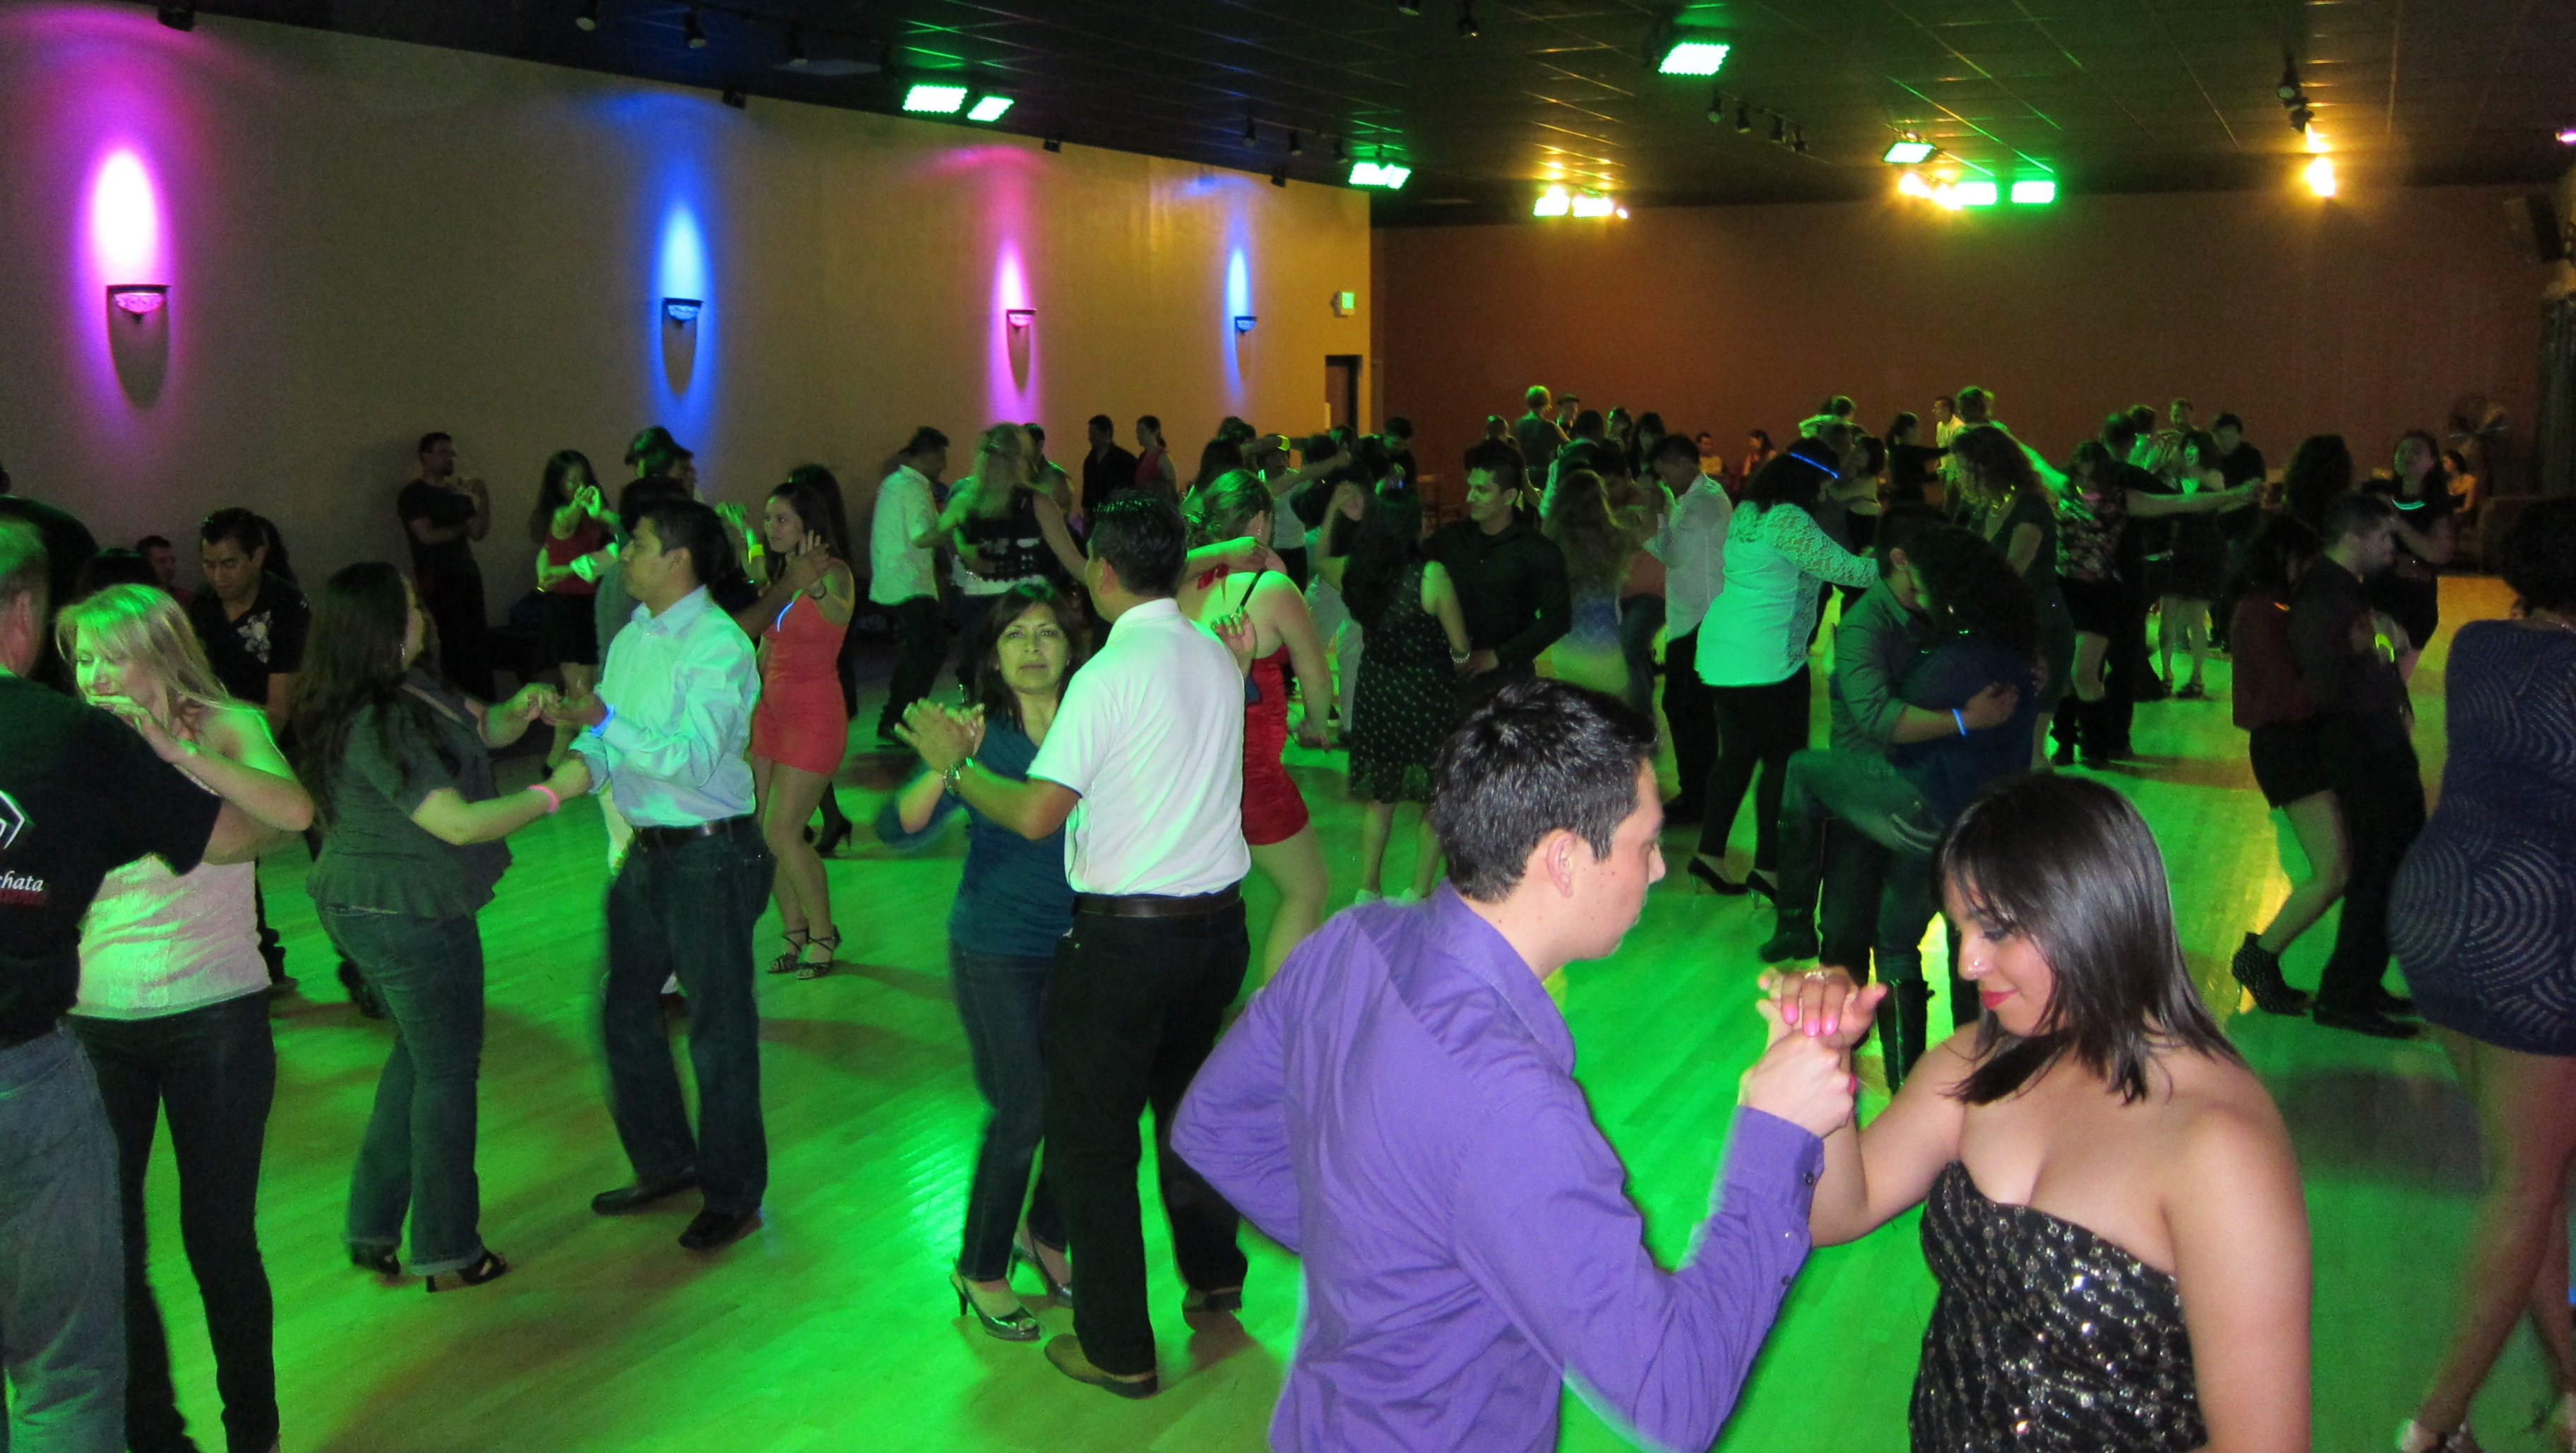 Club Sentimiento - The Bachata party of the Bay Area